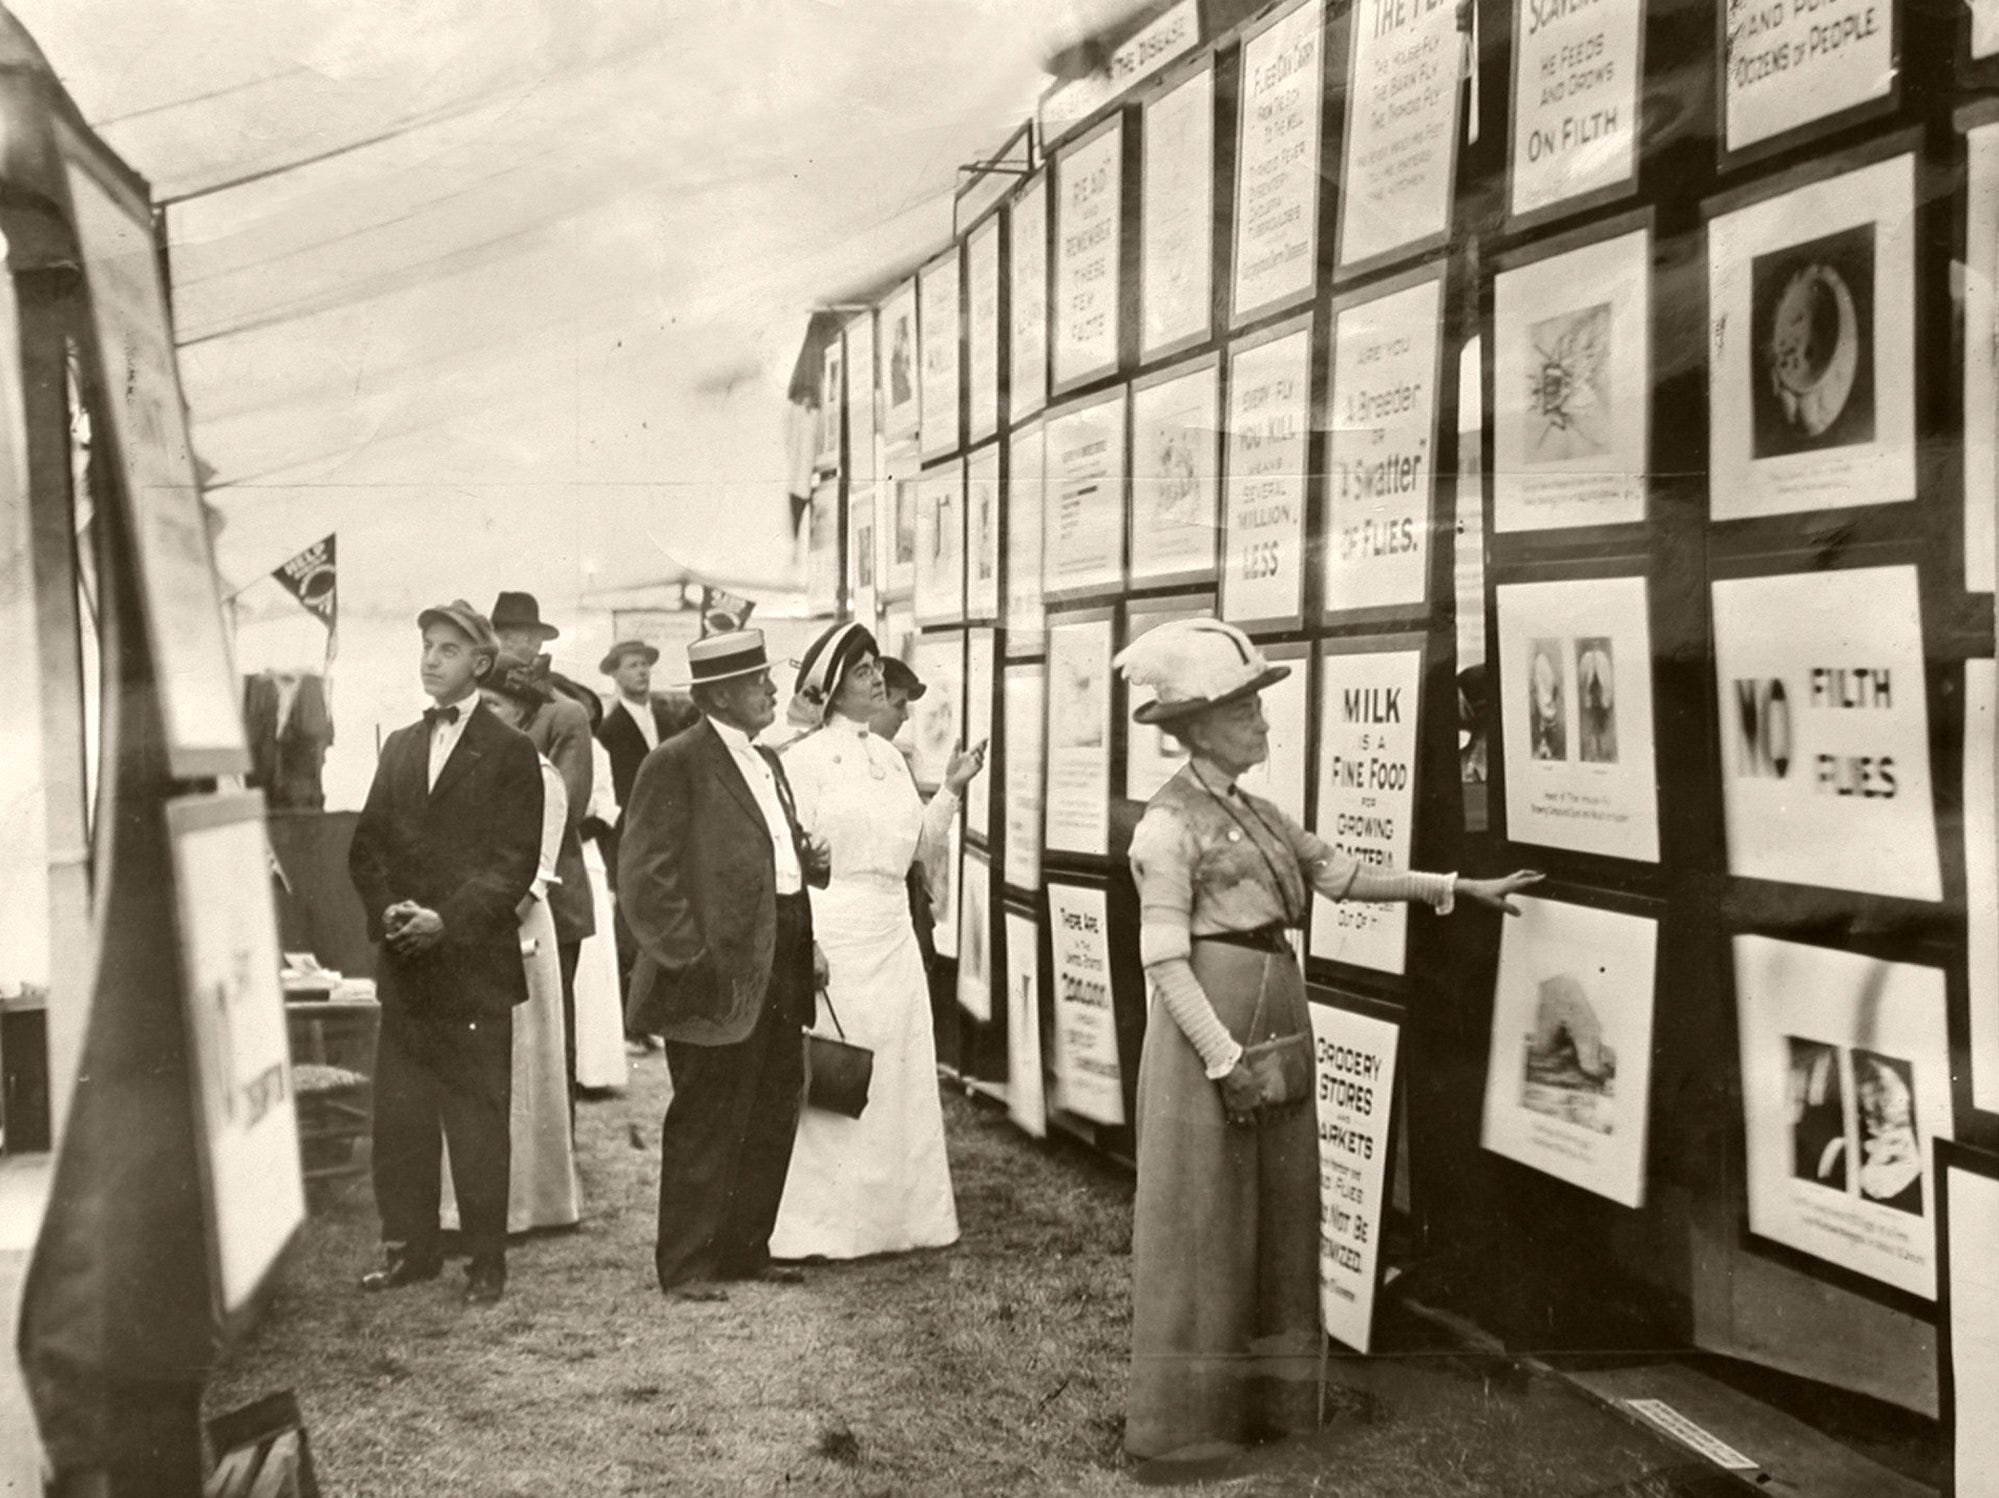 At the 1922 Kentucky State Fair visitors looked over posters, including dozens that advocated swatting flies to keep them from breeding. The fair, which actually began in 1902, wasn't held in 1904, and it was canceled during two years of World War II.